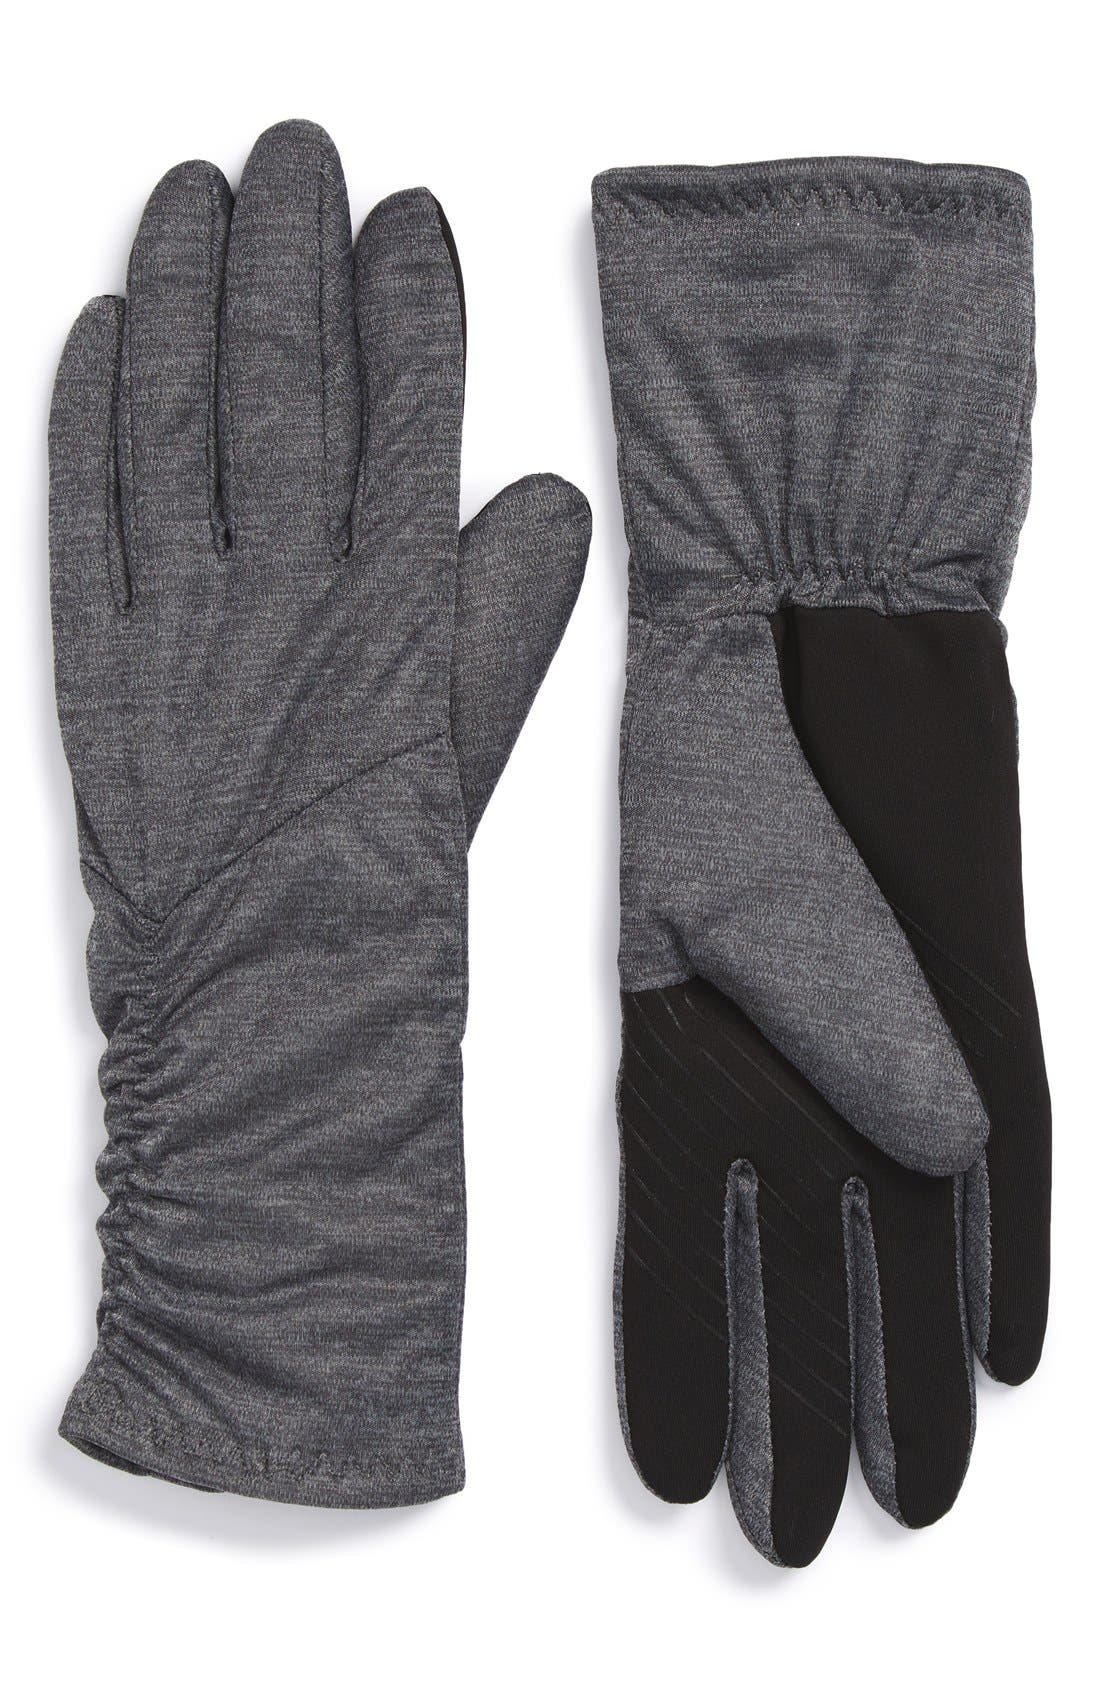 Main Image - UR Touchscreen Compatible Gloves